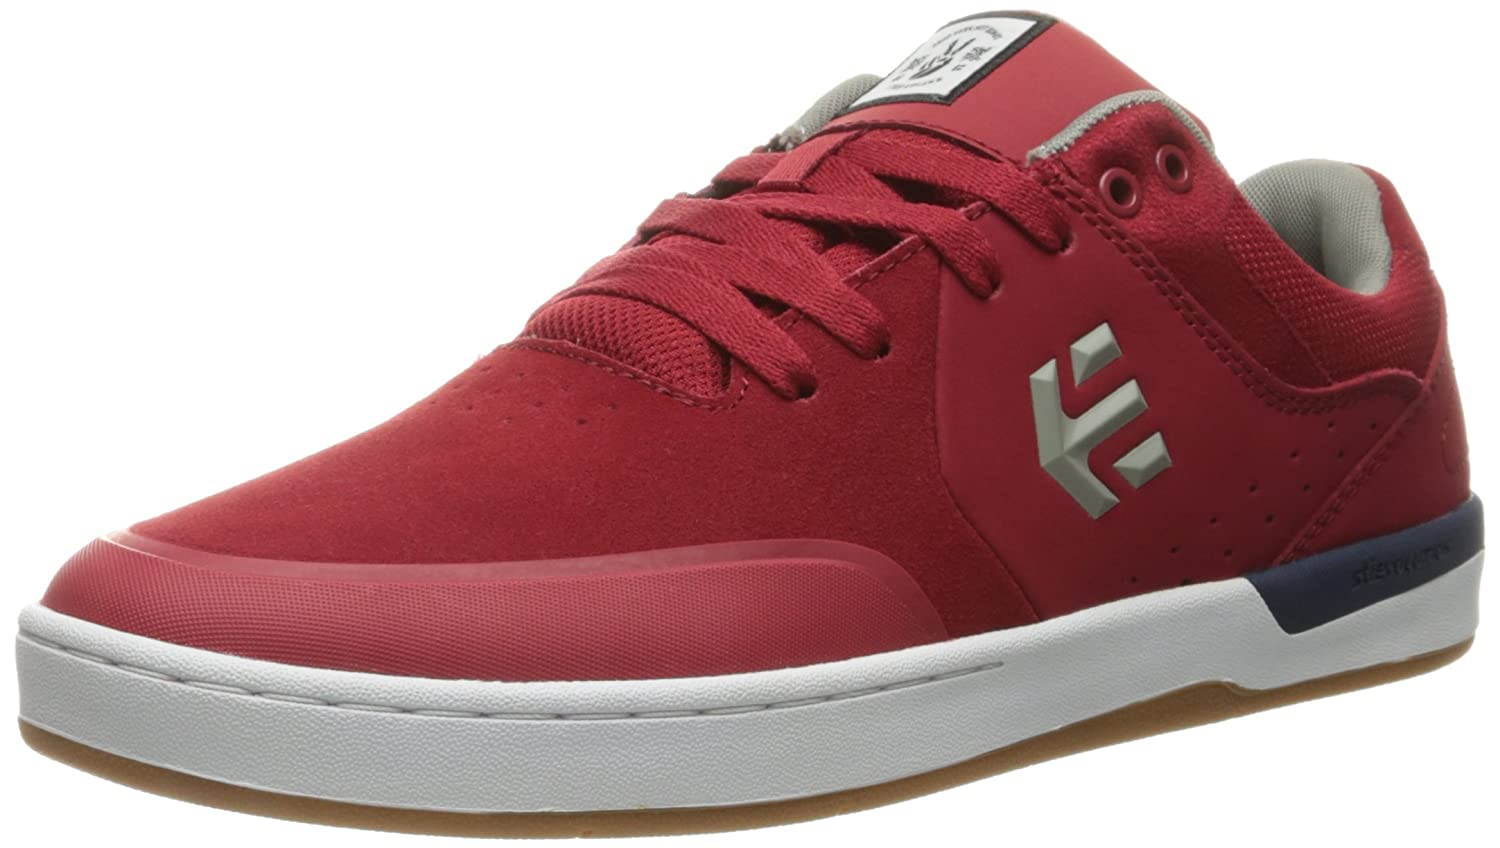 Etnies Men's Marana Xt Skateboarding Shoe 6 D(M) US|Red/White/Gum